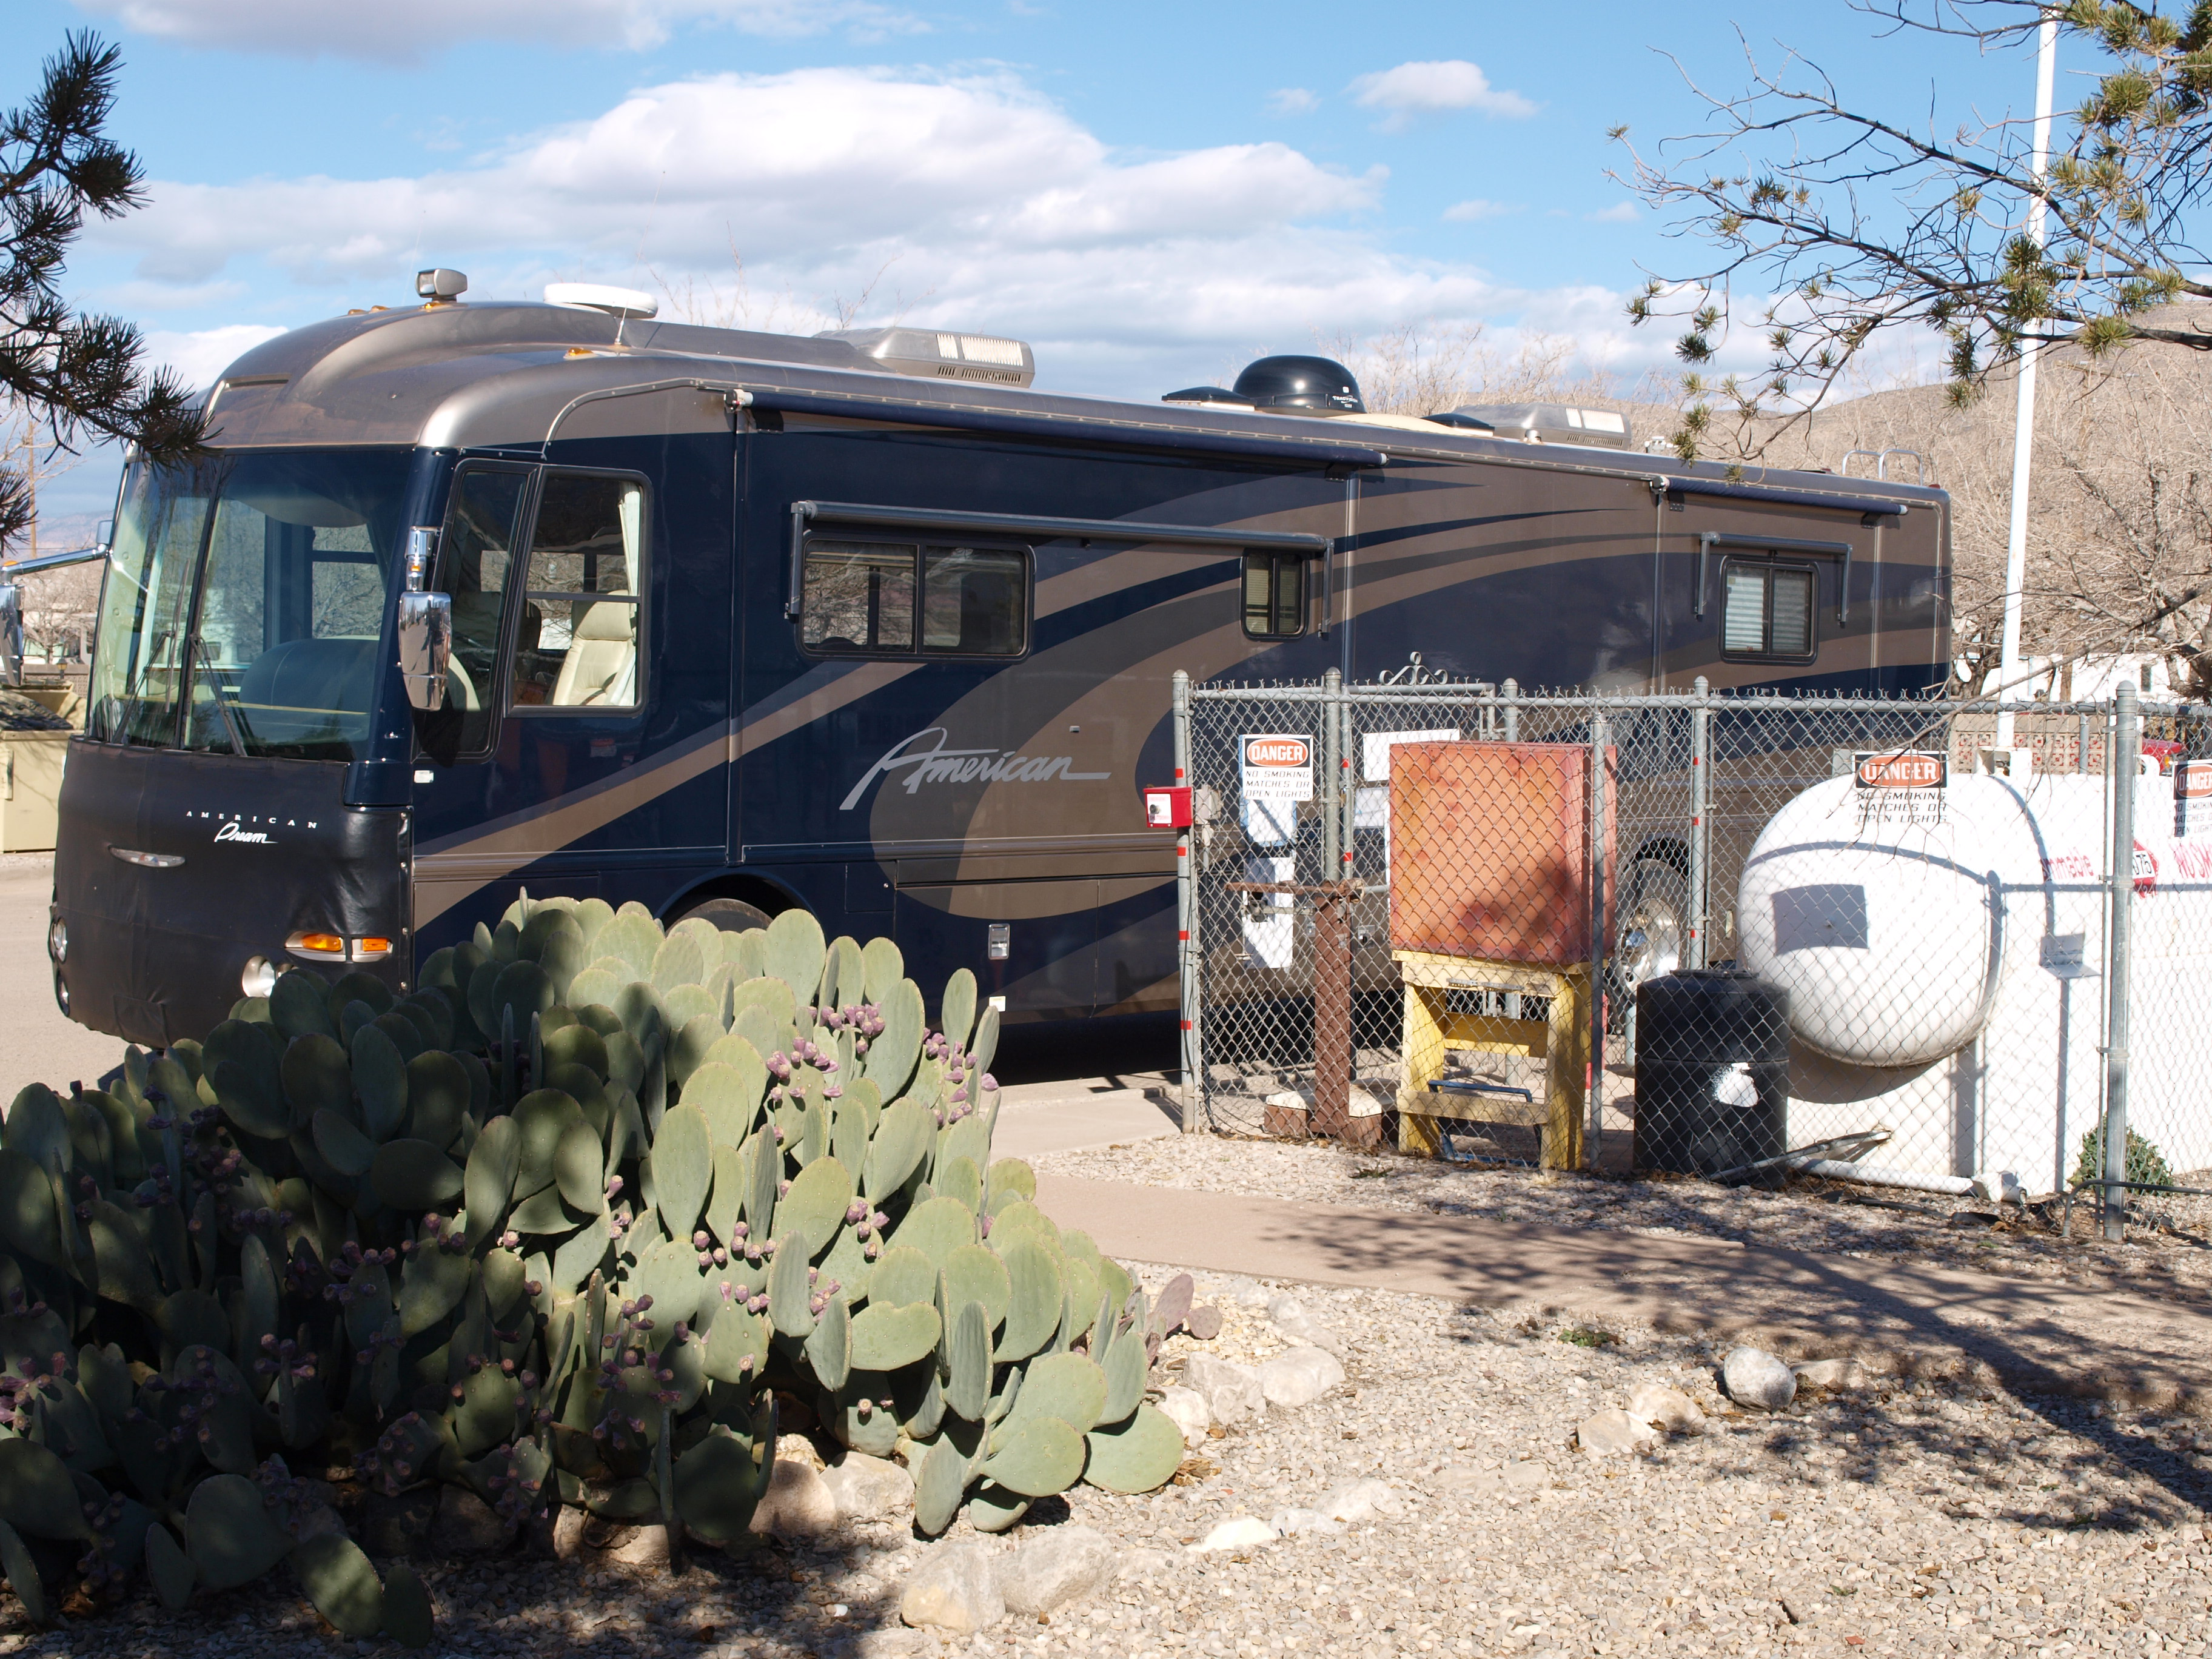 Alamogordo / White Sands KOA Journey - Campground - Alamogordo, NM 88310